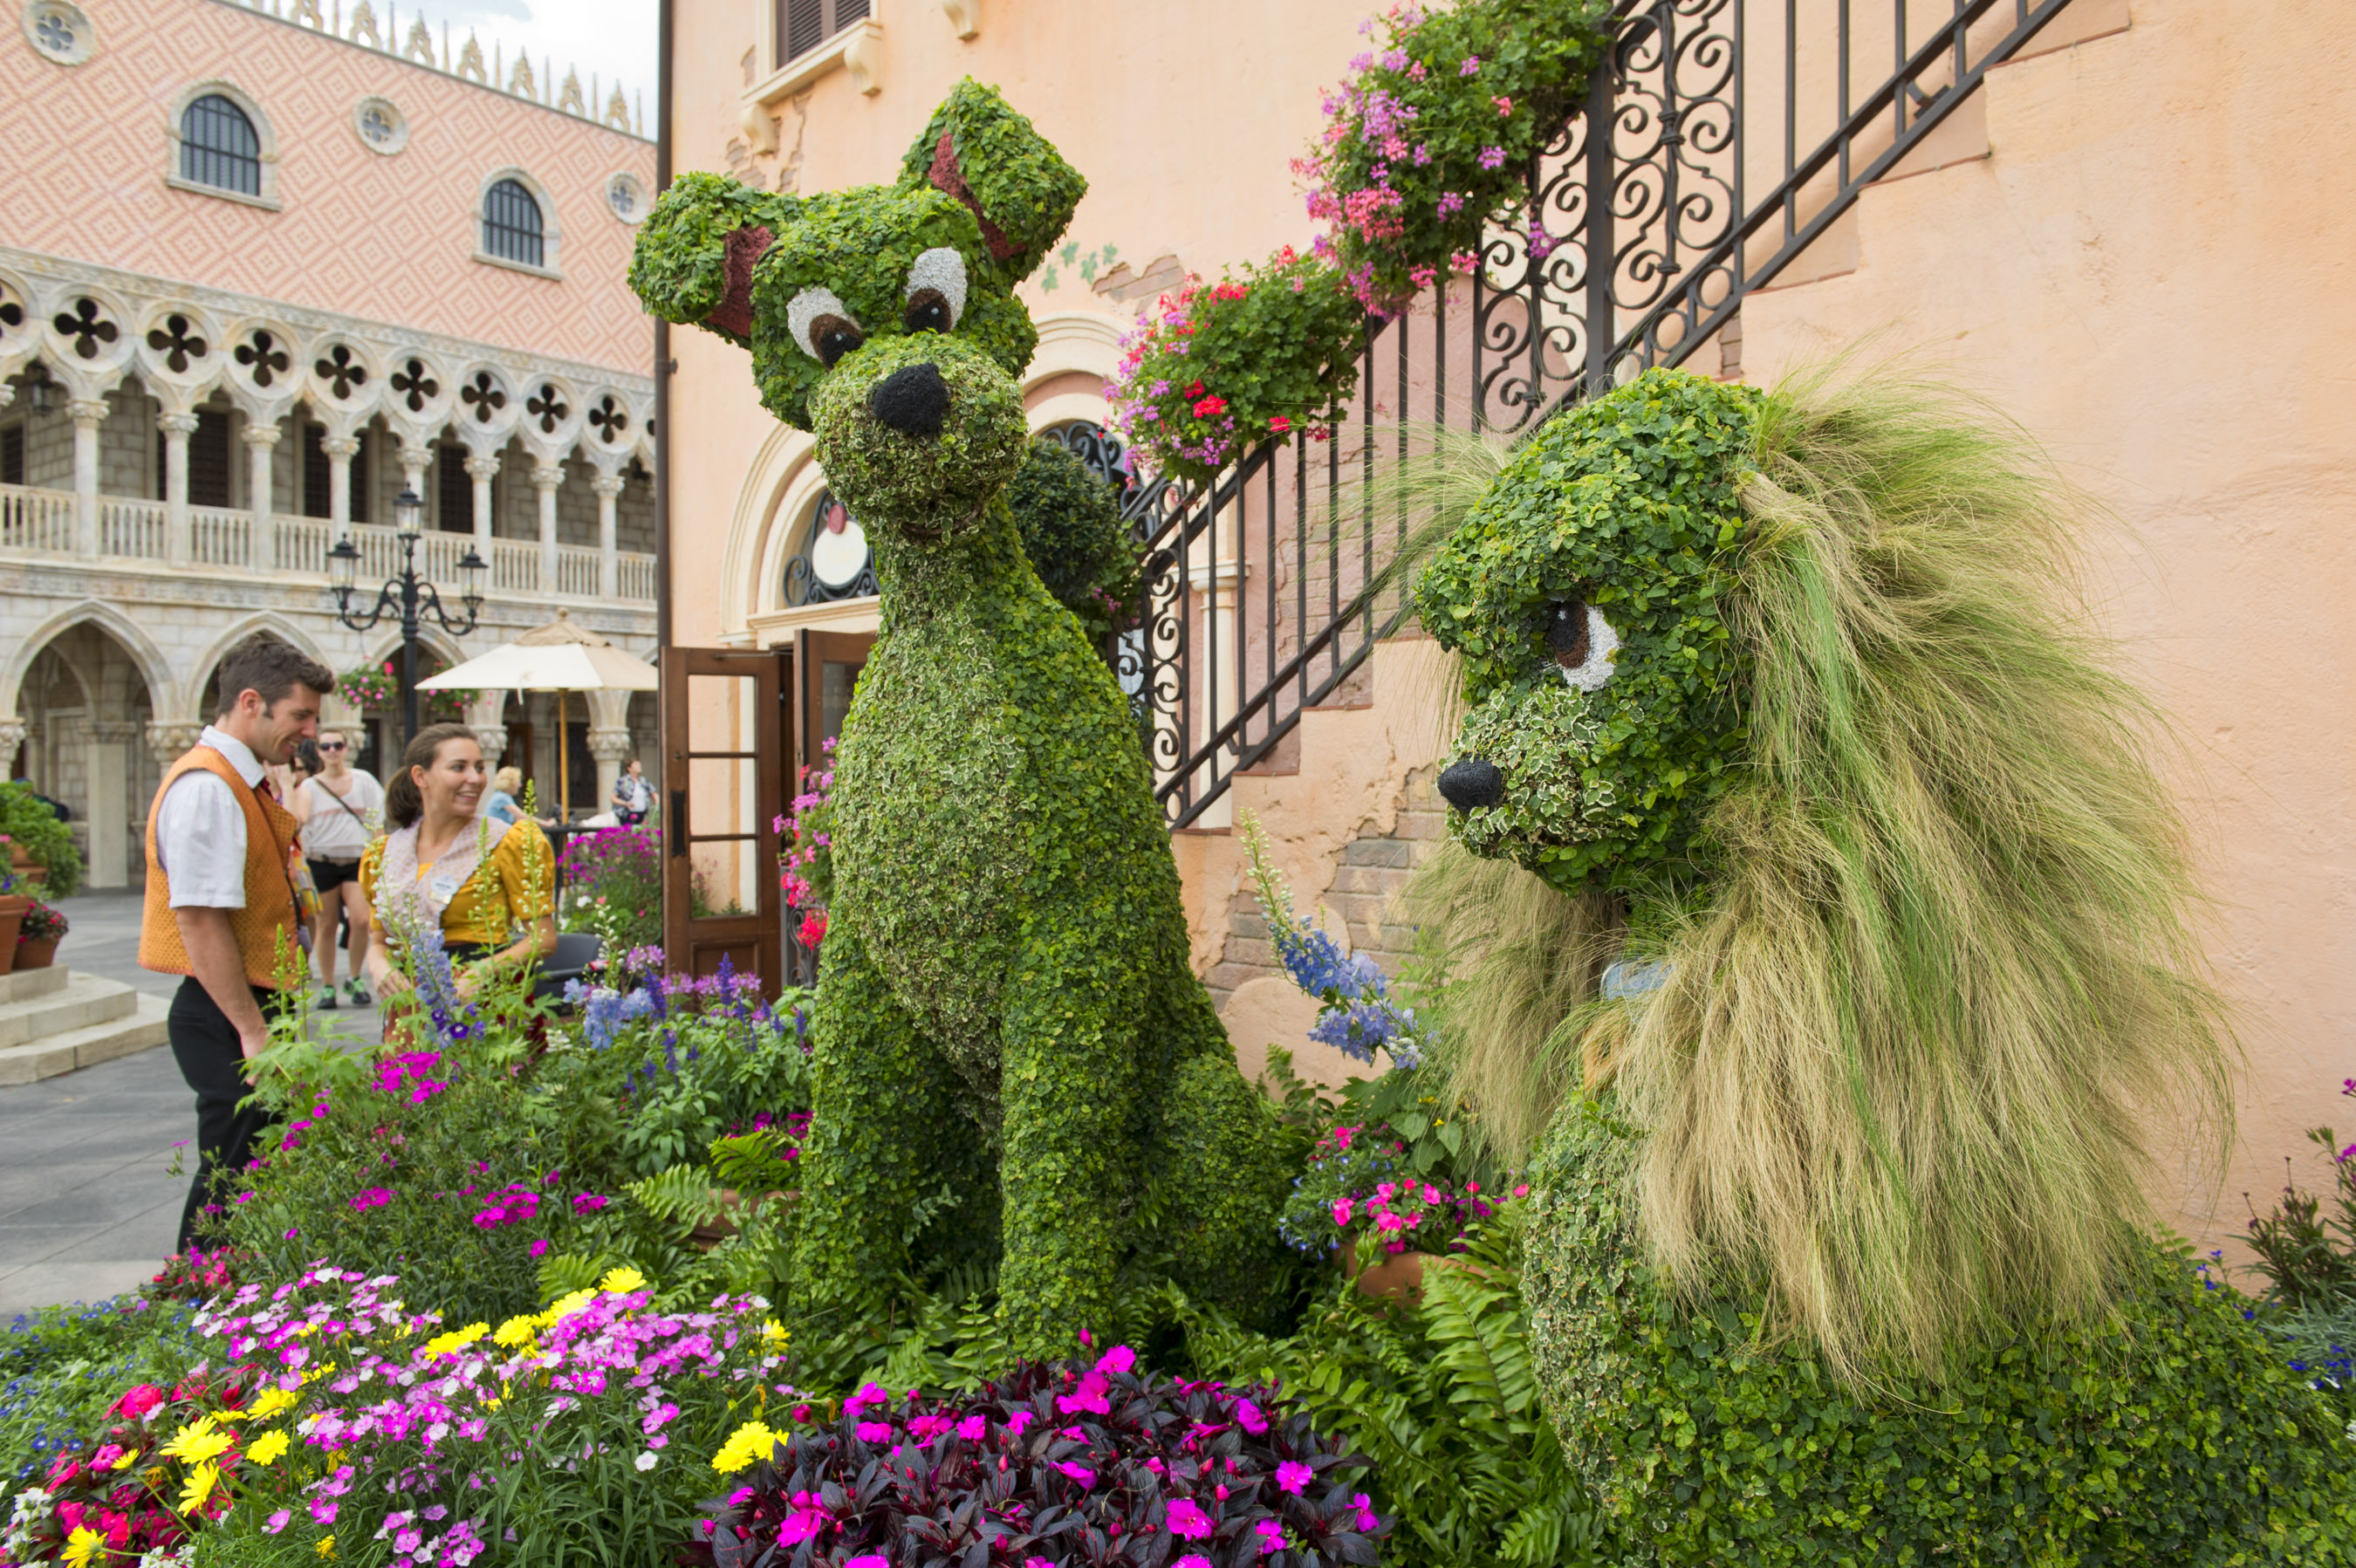 Dates for the 2014 Epcot International Flower Garden Festival